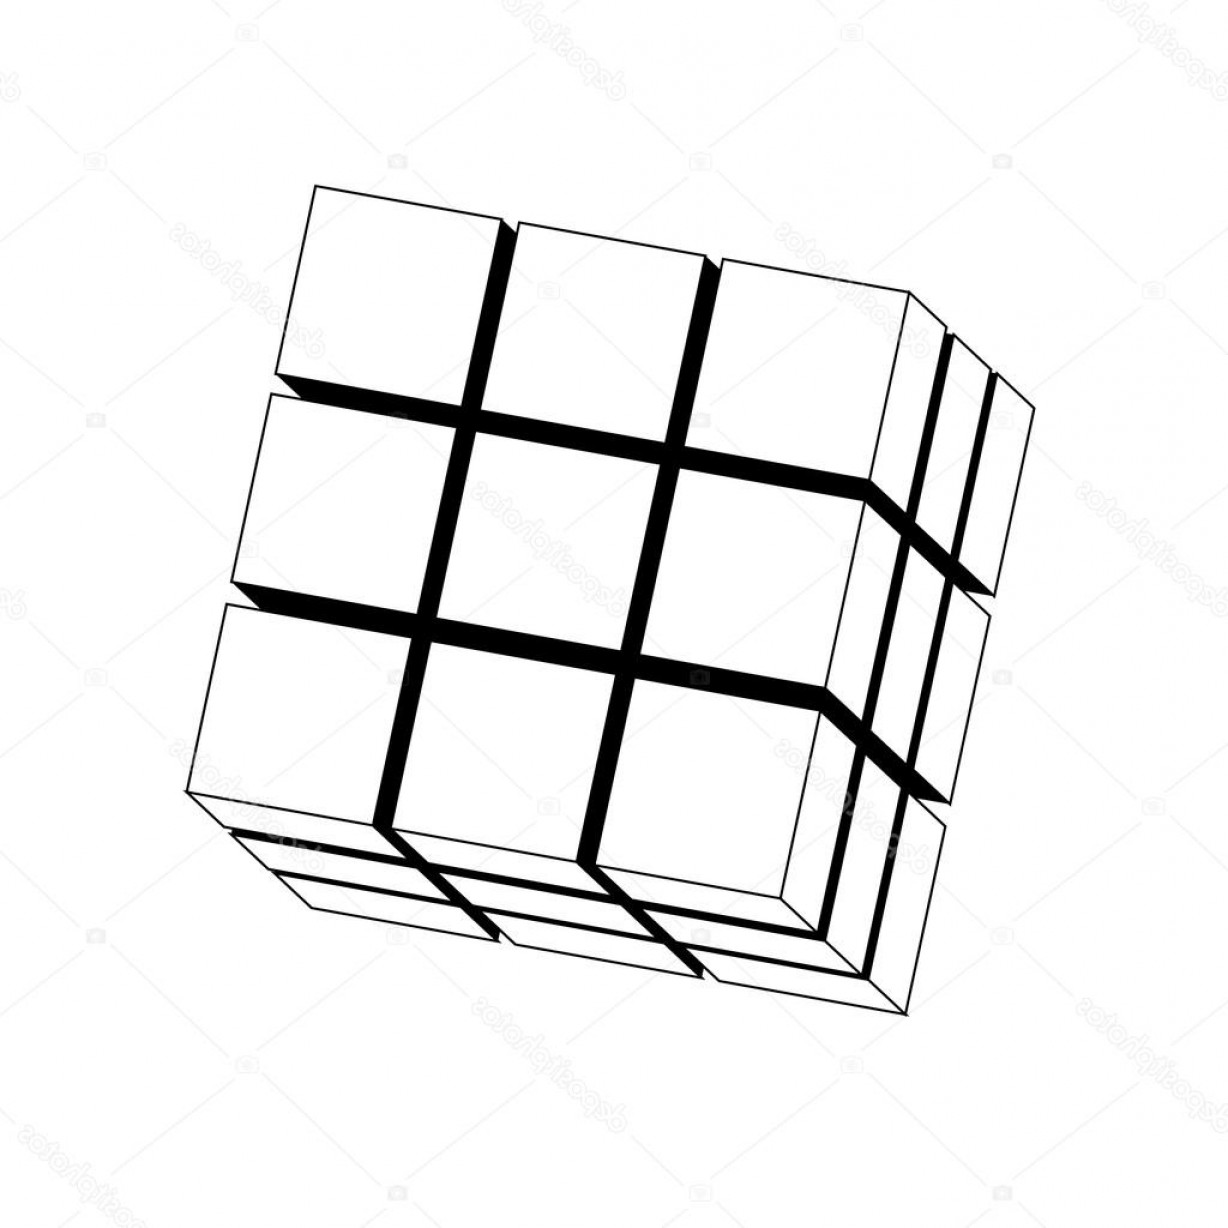 Rubiks Cube Drawing